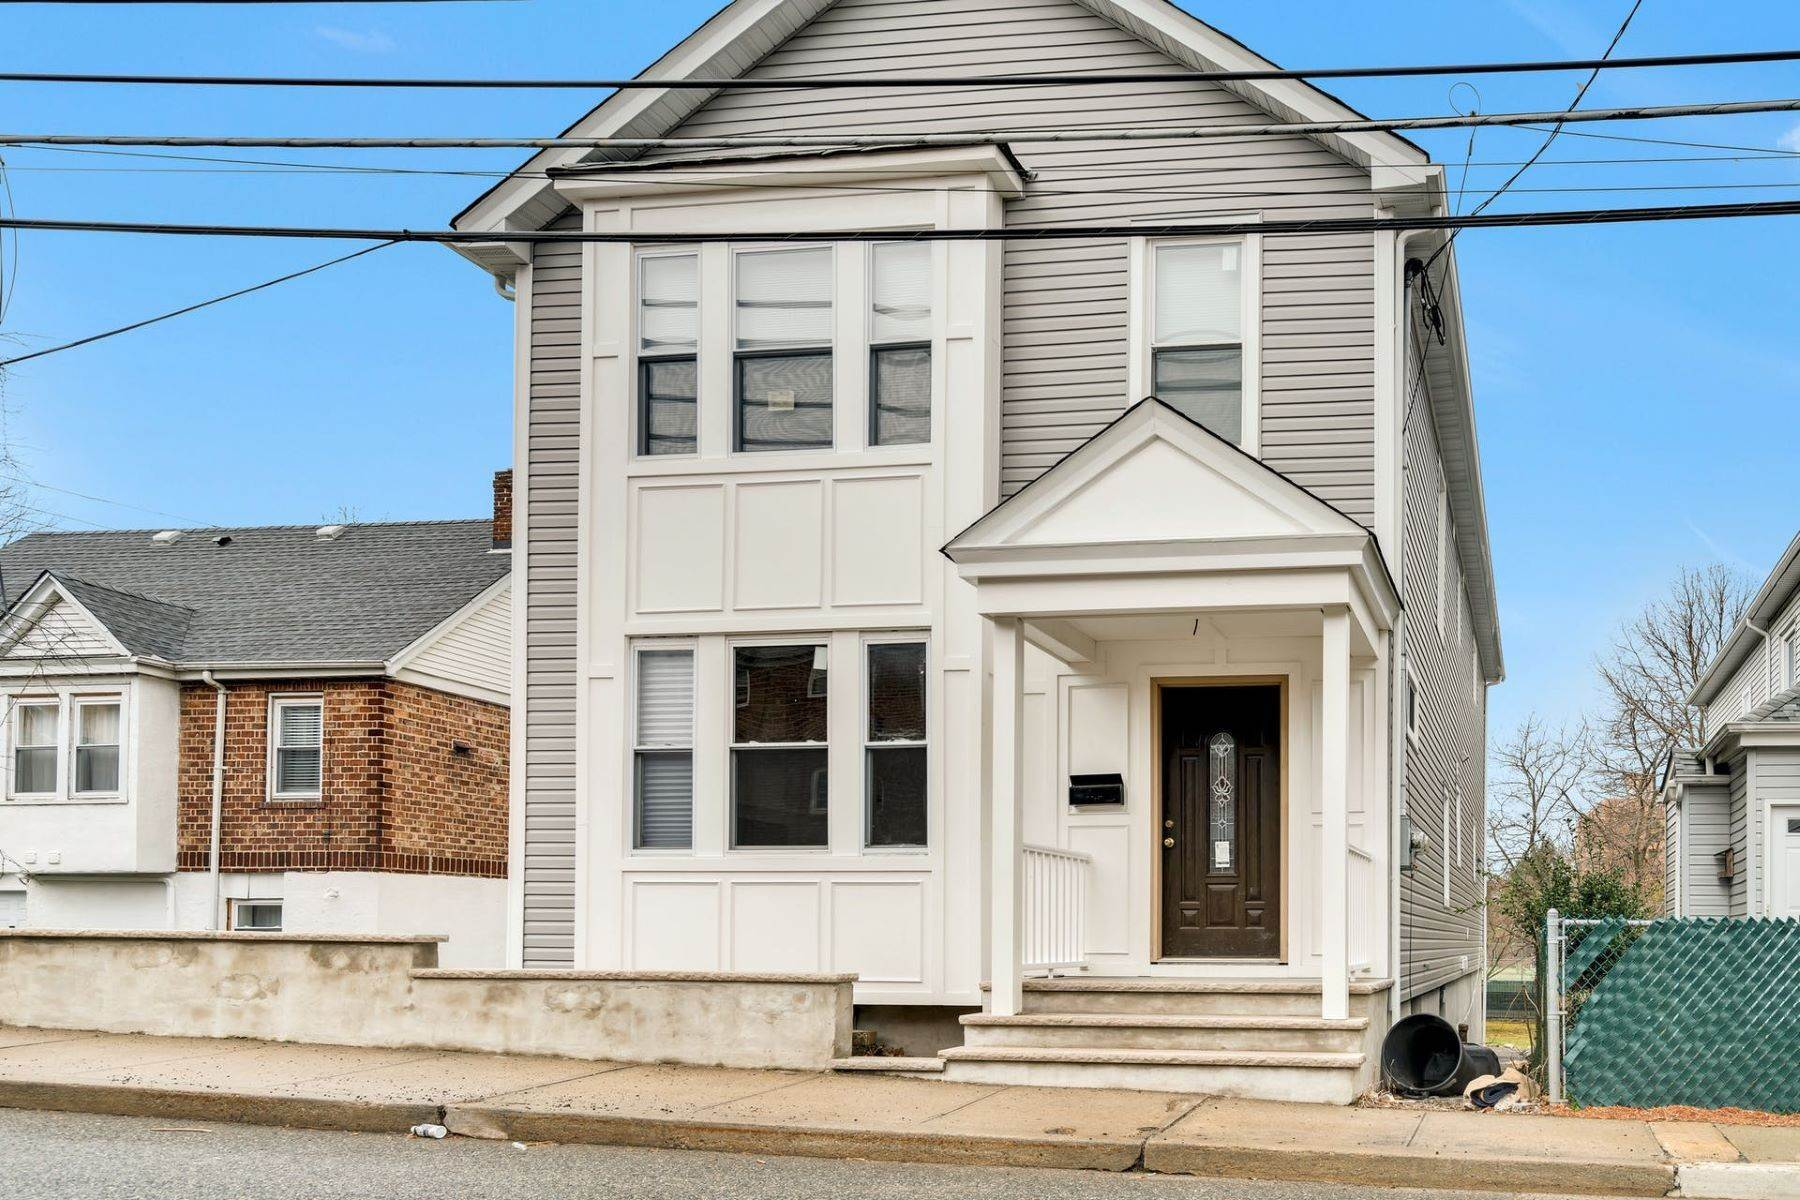 Multi-Family Homes for Sale at 222 Myrtle Ave, Fort Lee, NJ 07024 222 Myrtle Ave Fort Lee, New Jersey 07024 United States